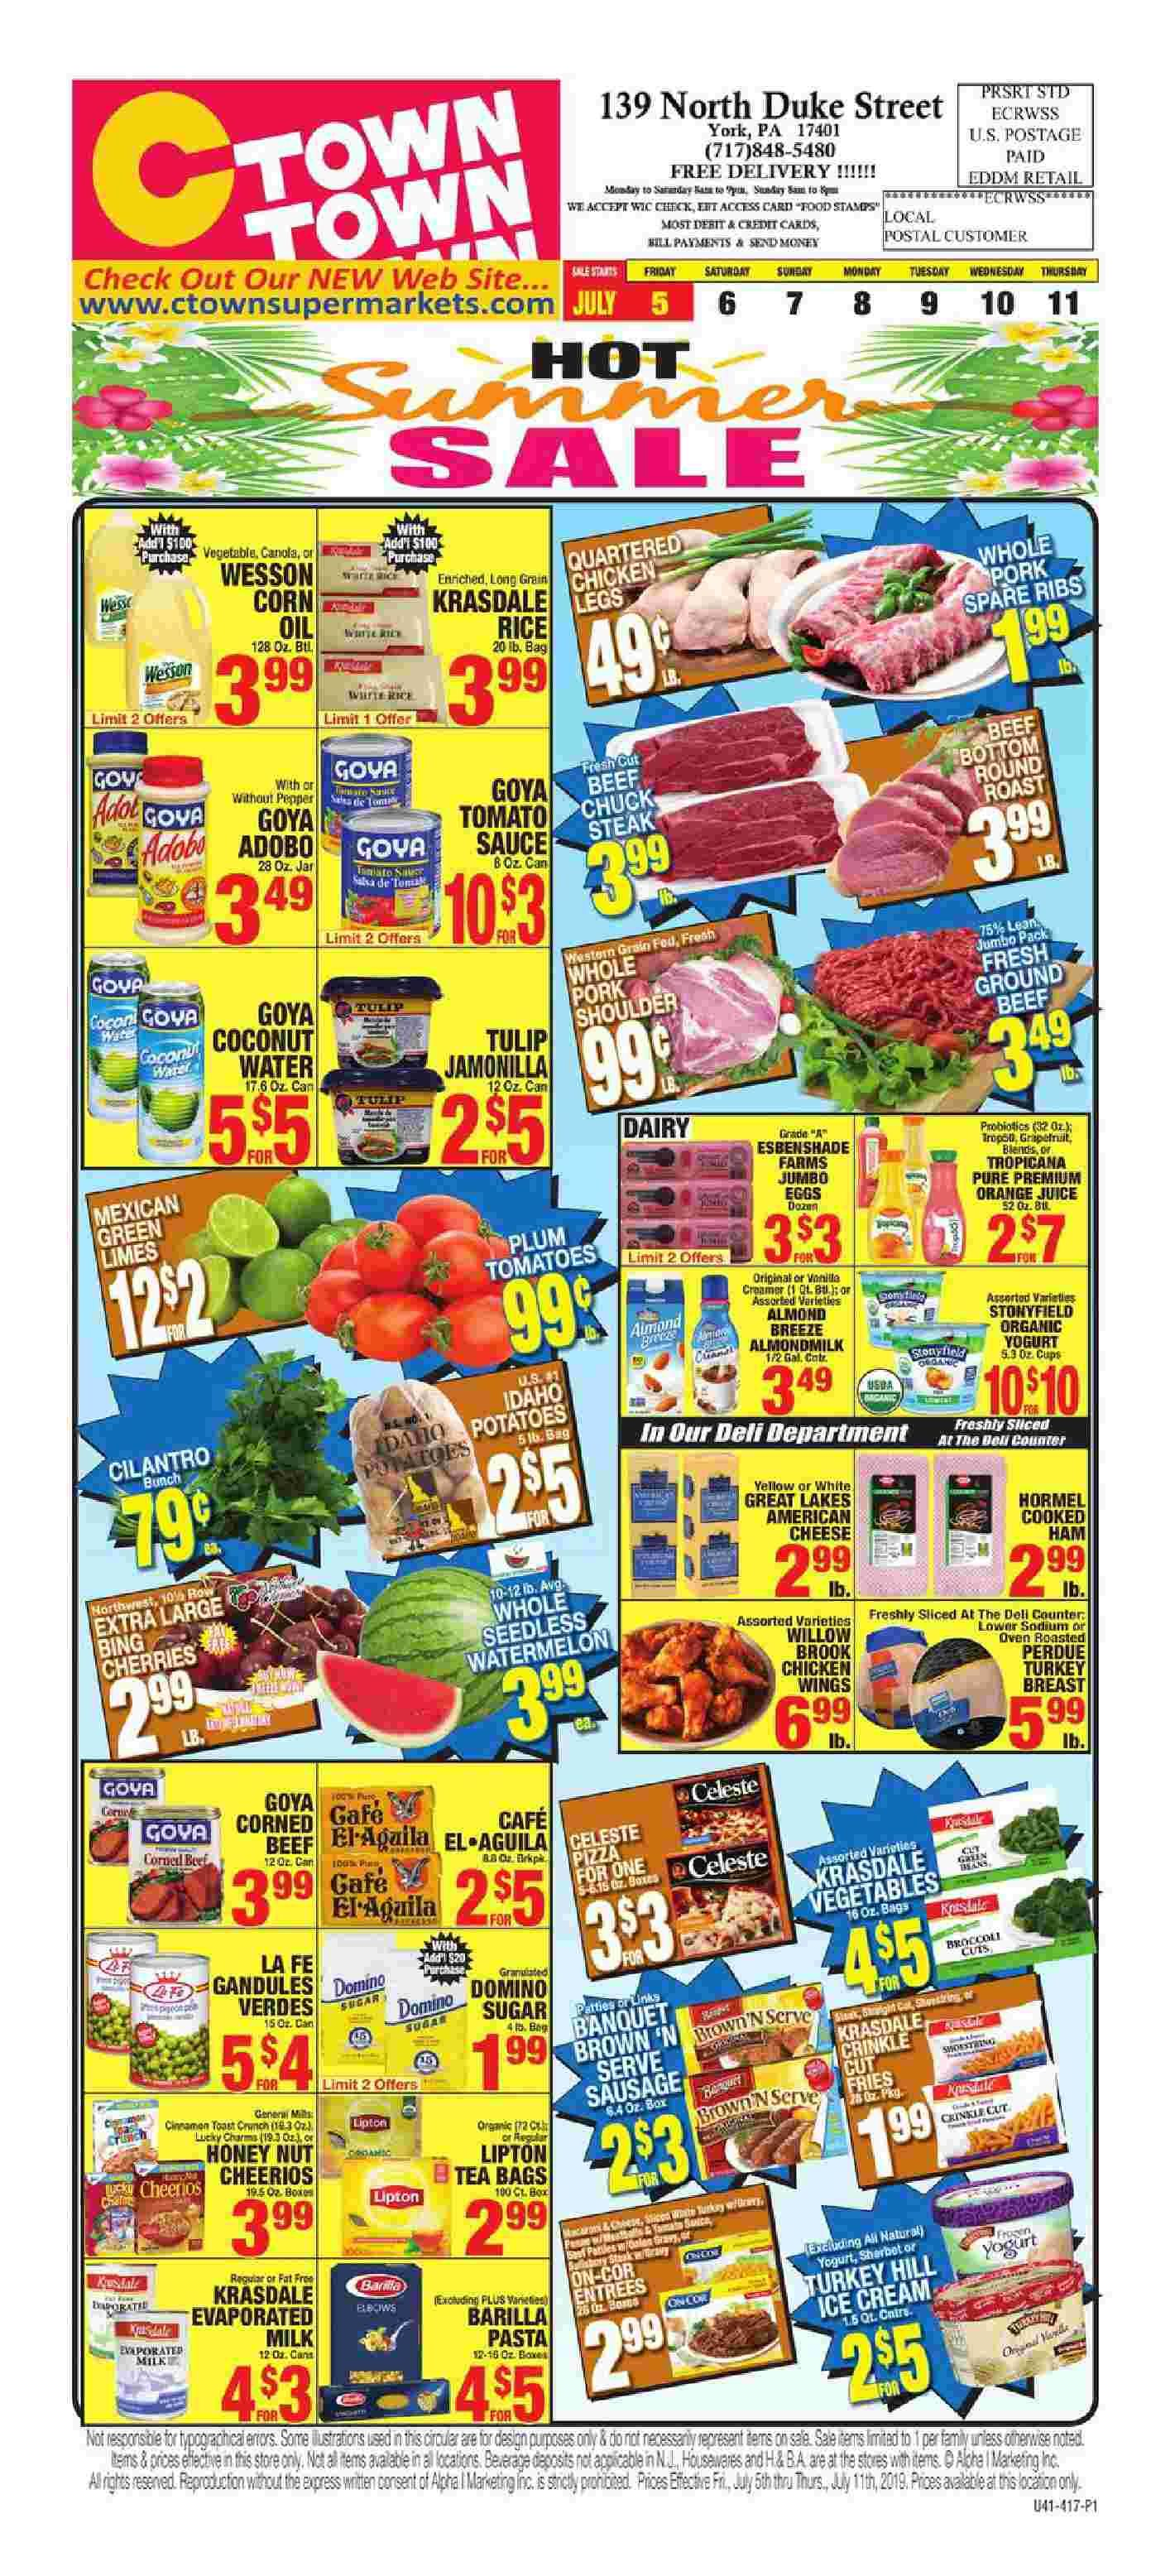 Safeway Weekly ad January 23 29, 2019. Find Latest